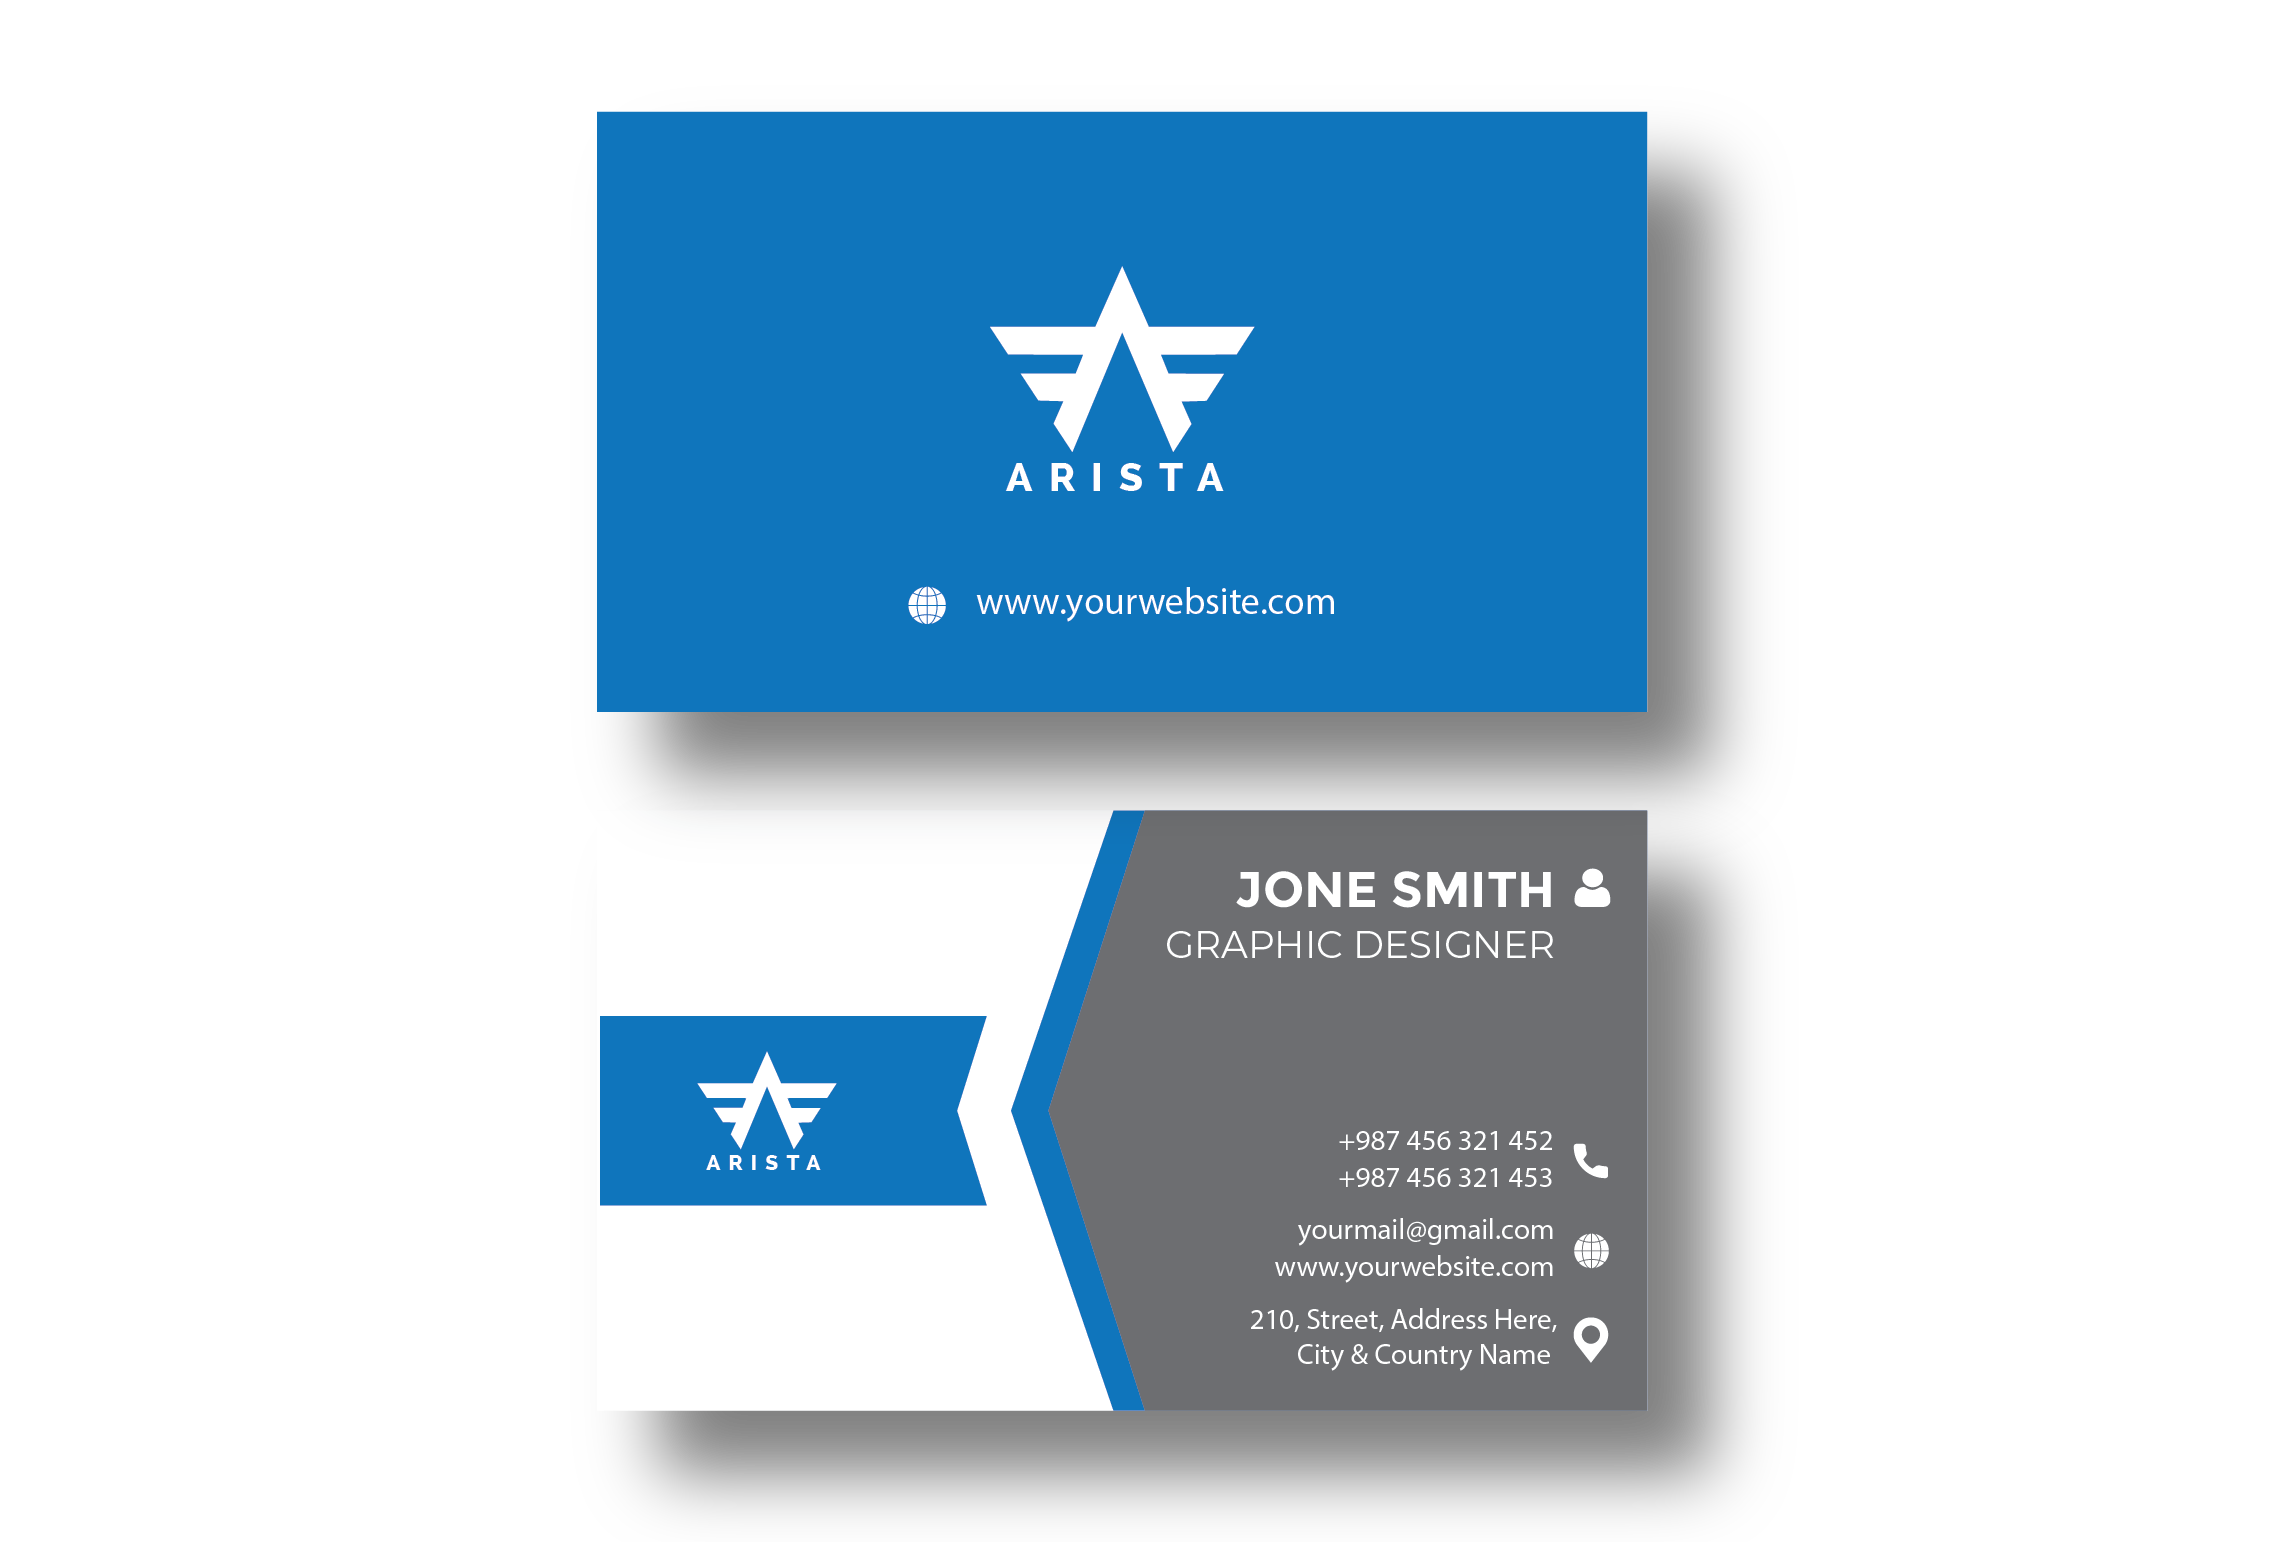 I will create business card design two concept for you